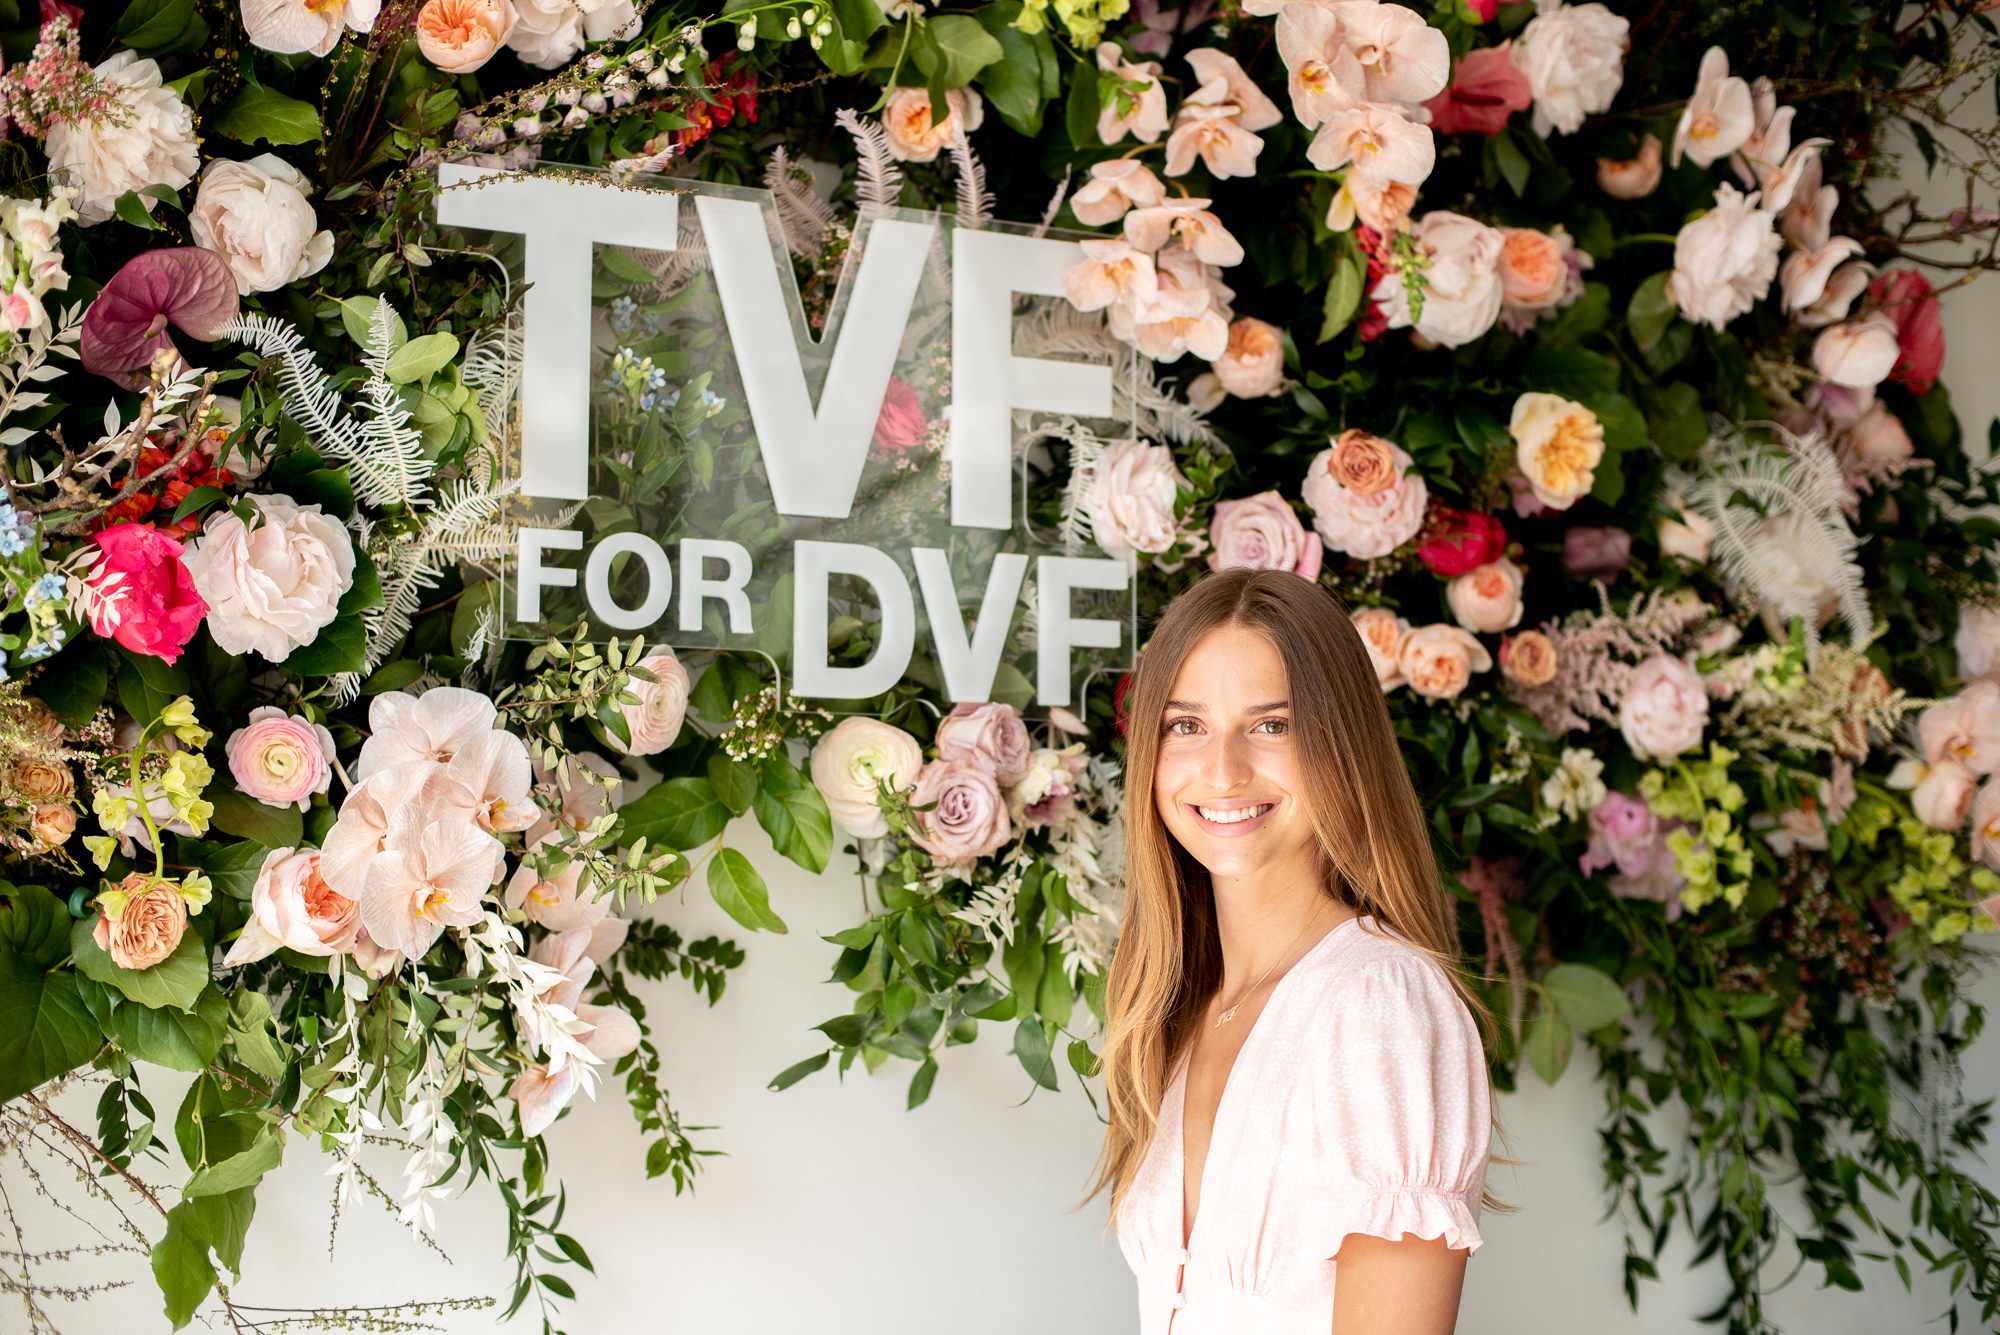 tvf for dvf, appear here, pop up, pop up l.a